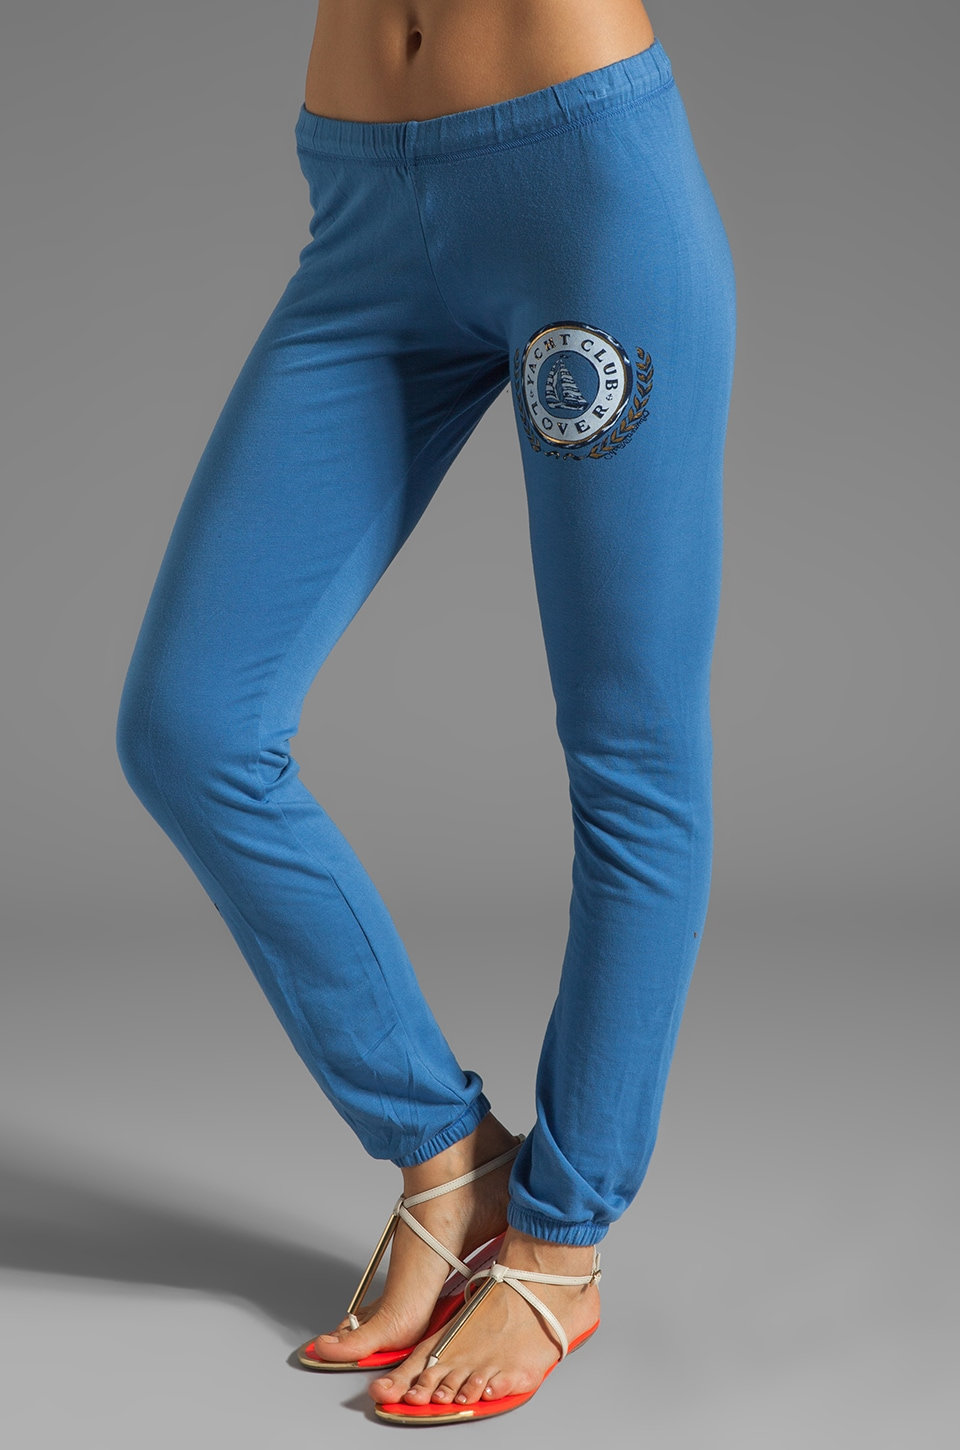 Lauren Moshi Demi Color Yacht Club Leg Sweatpants in Denim